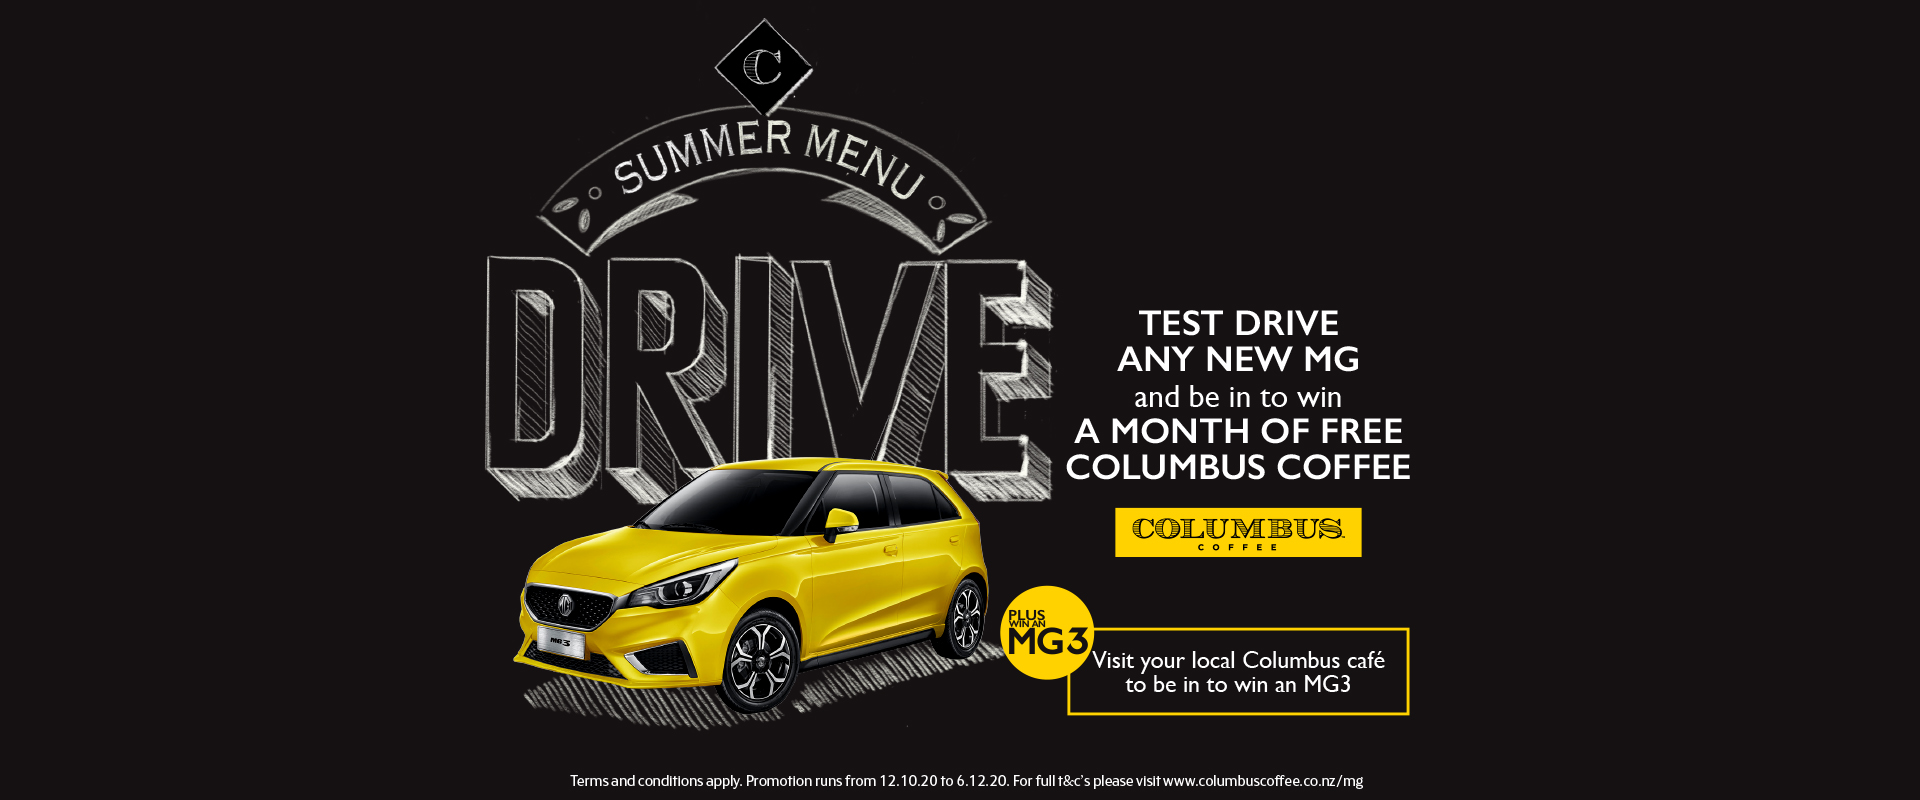 Test drive any new MG and be in to win a month of free Columbus Coffee.